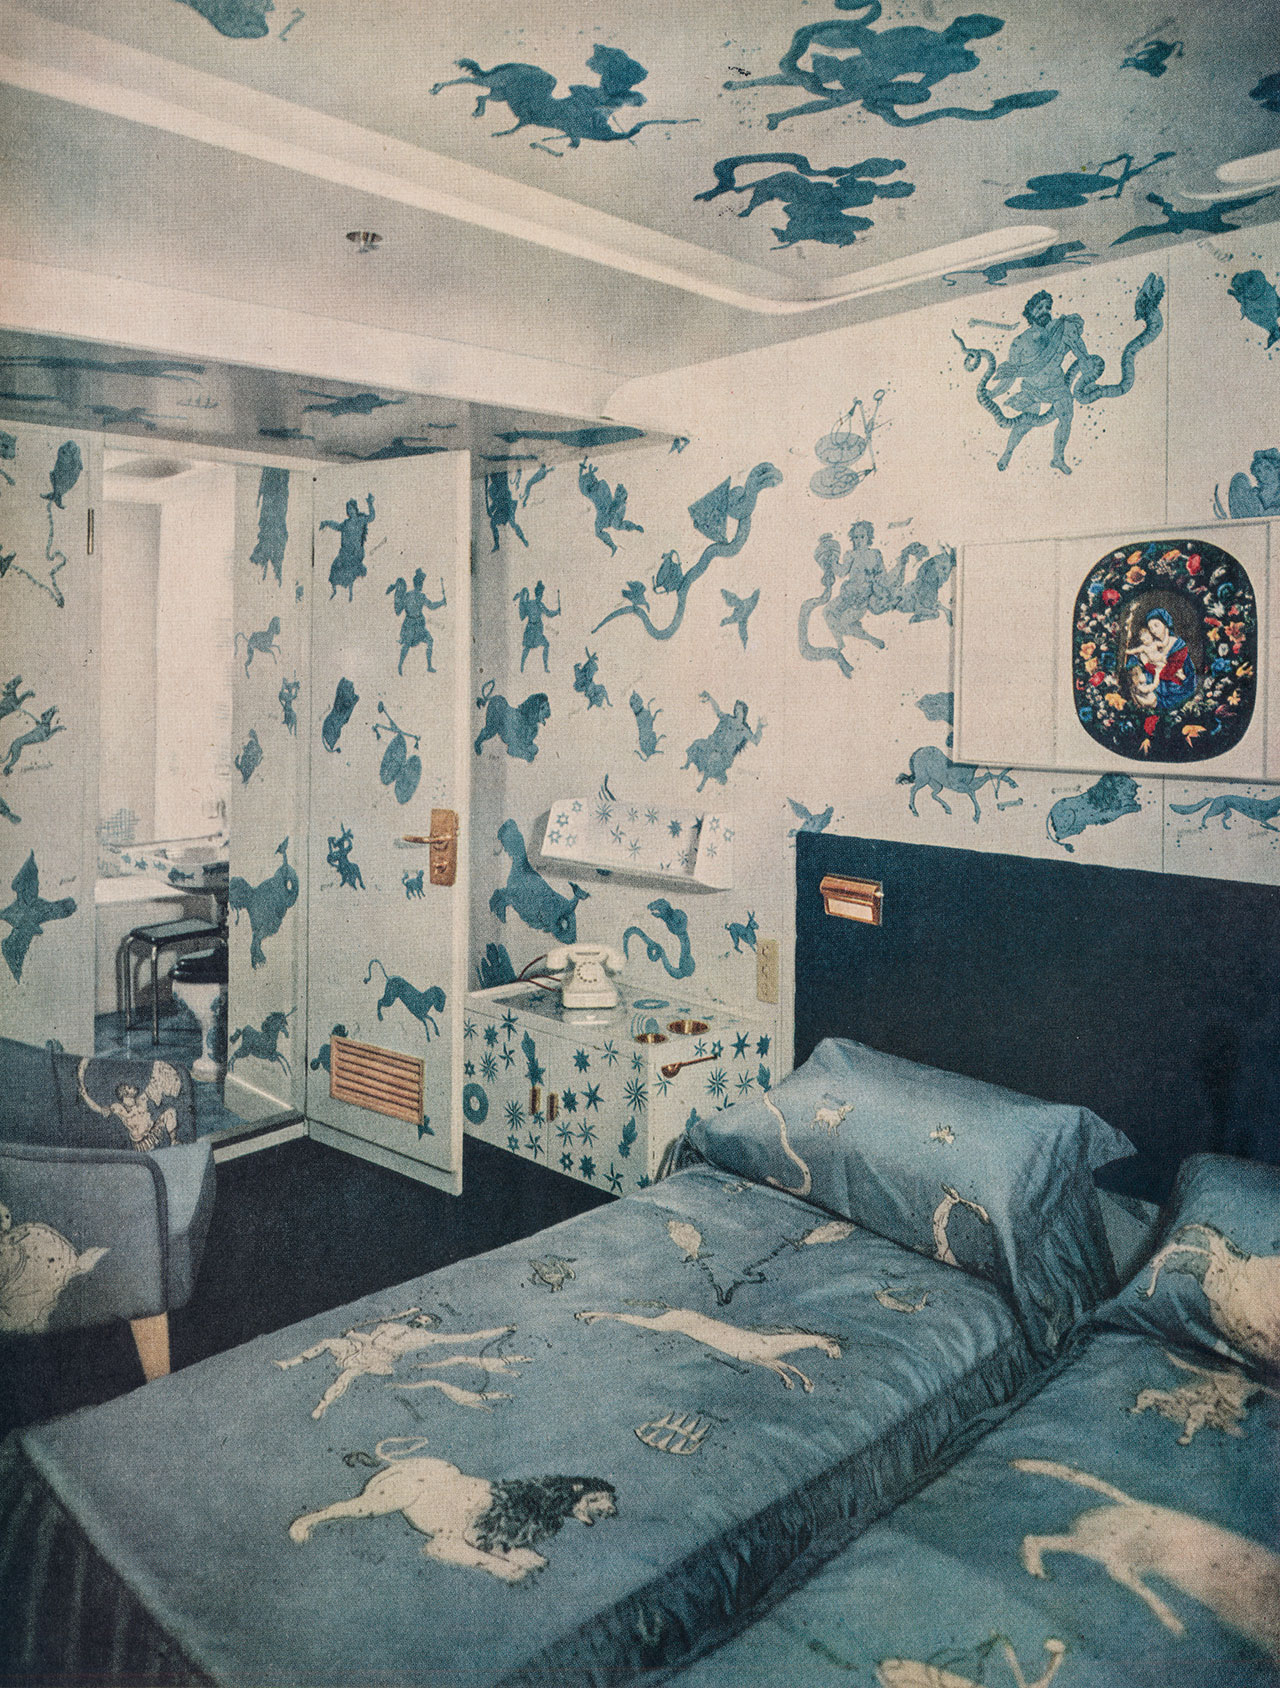 Gio Ponti with Piero Fornasetti, Zodiac Suite, ocean liner Andrea Doria, 1950. Colored photograph from an Andrea Doria advertising brochure. Ponti and Fornasett achieved a game of reversals with the blue-and-white pattern on pattern, engulfing the entire room and distorting spatial reading, but with an unexpected intimacy of enchantment. Photo courtesy Paolo Piccione Collection.